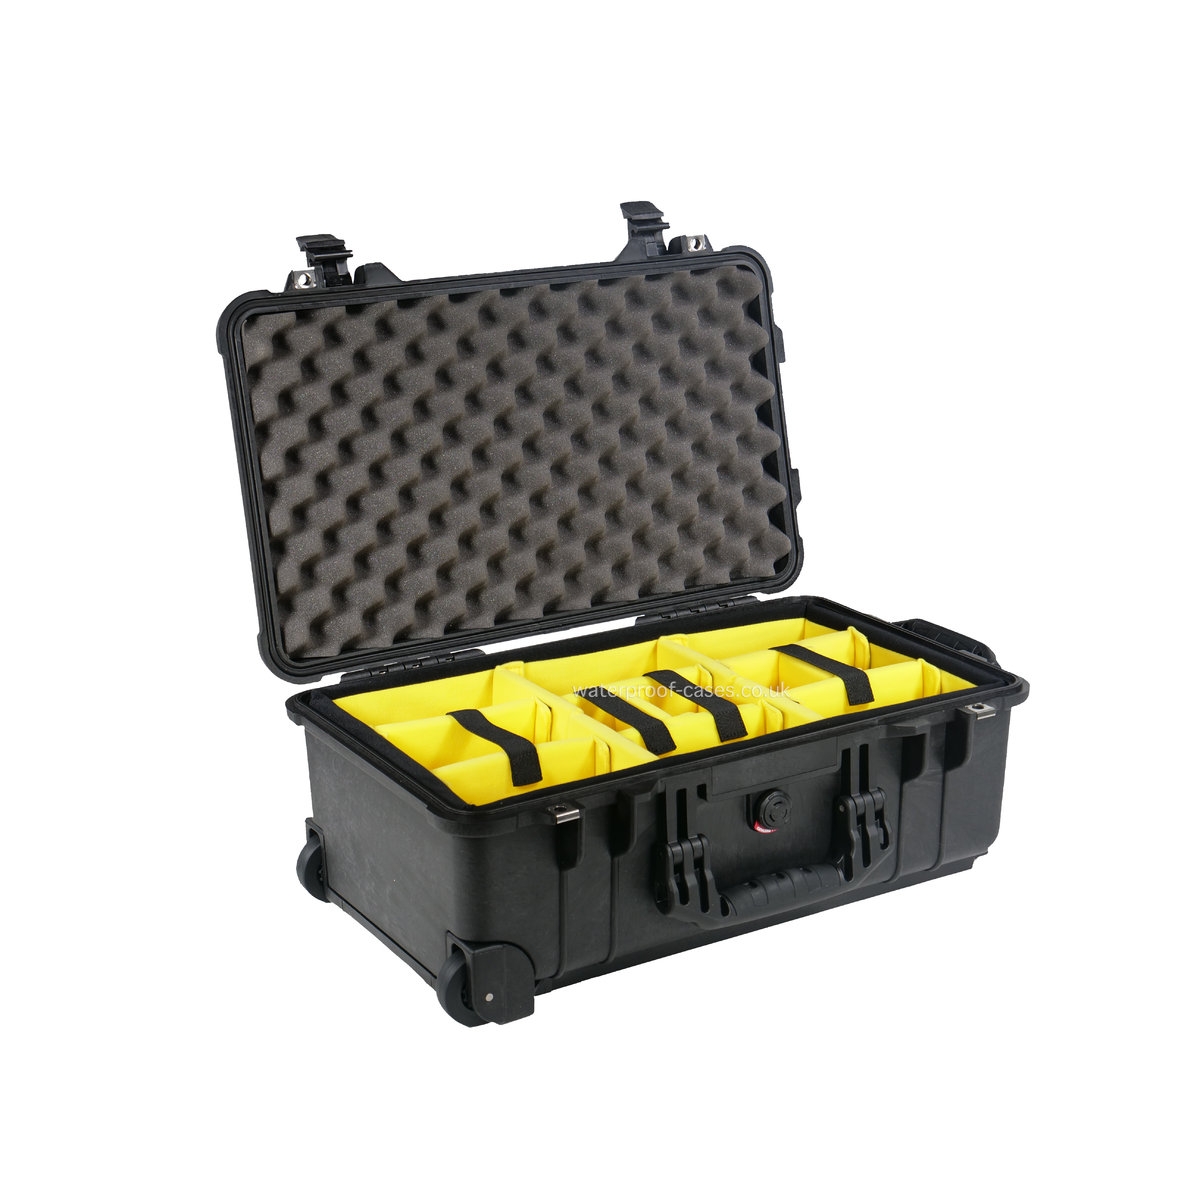 Peli 1510 Case Call 01902 324734 For Best Prices